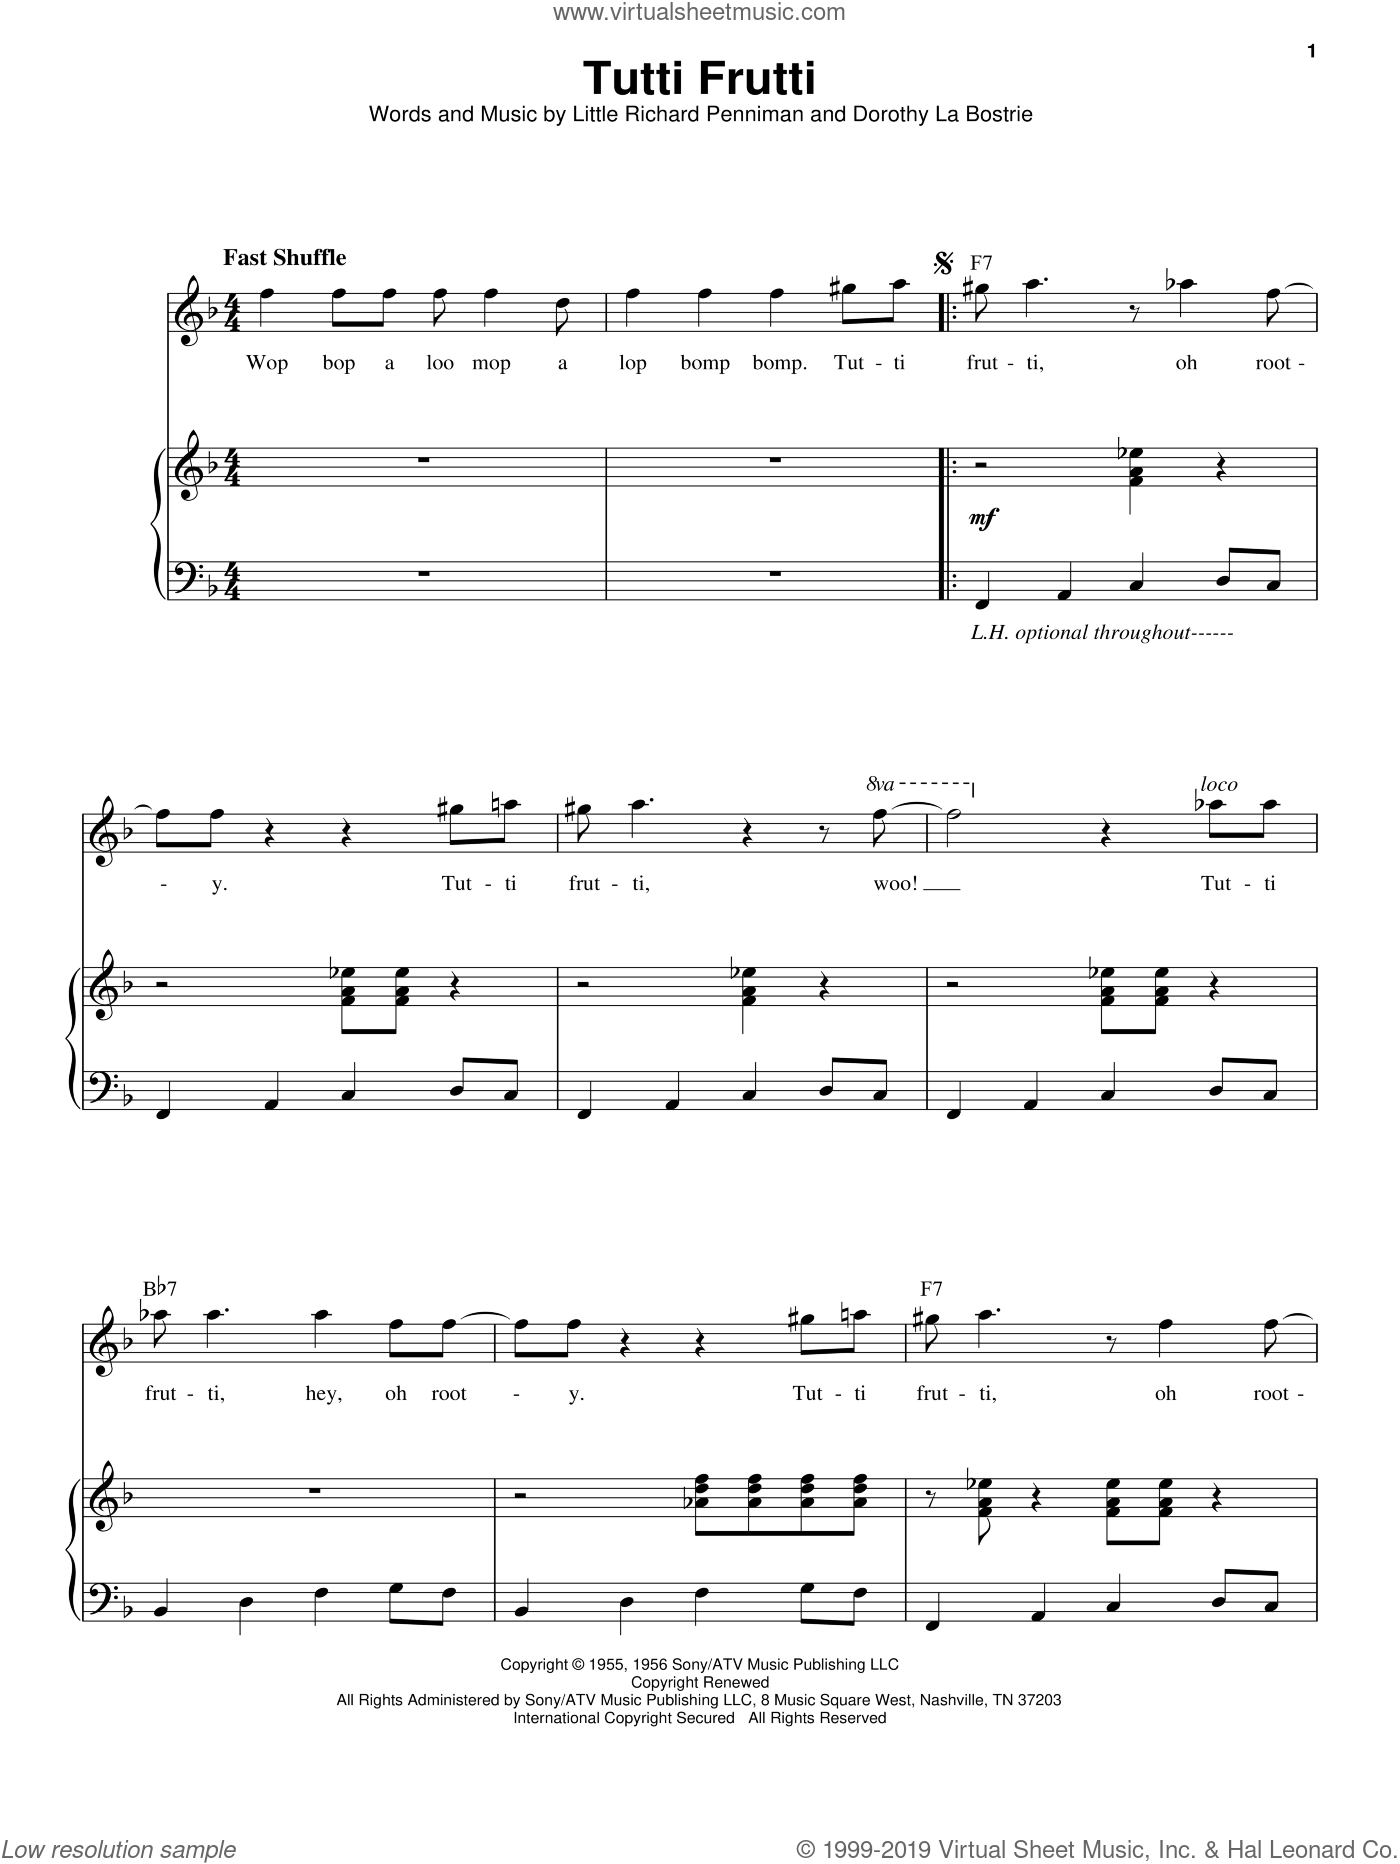 Tutti Frutti sheet music for voice and piano by Richard Penniman